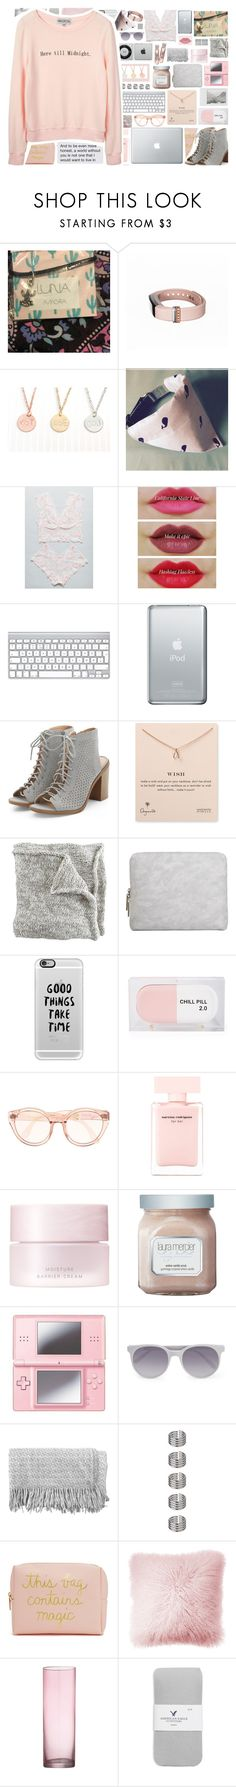 """""""Here till Midnight"""" by stelbell ❤ liked on Polyvore featuring Fitbit, Dogeared, Polaroid, 3.1 Phillip Lim, Casetify, Sarah's Bag, Narciso Rodriguez, SUQQU, Laura Mercier and Nintendo"""